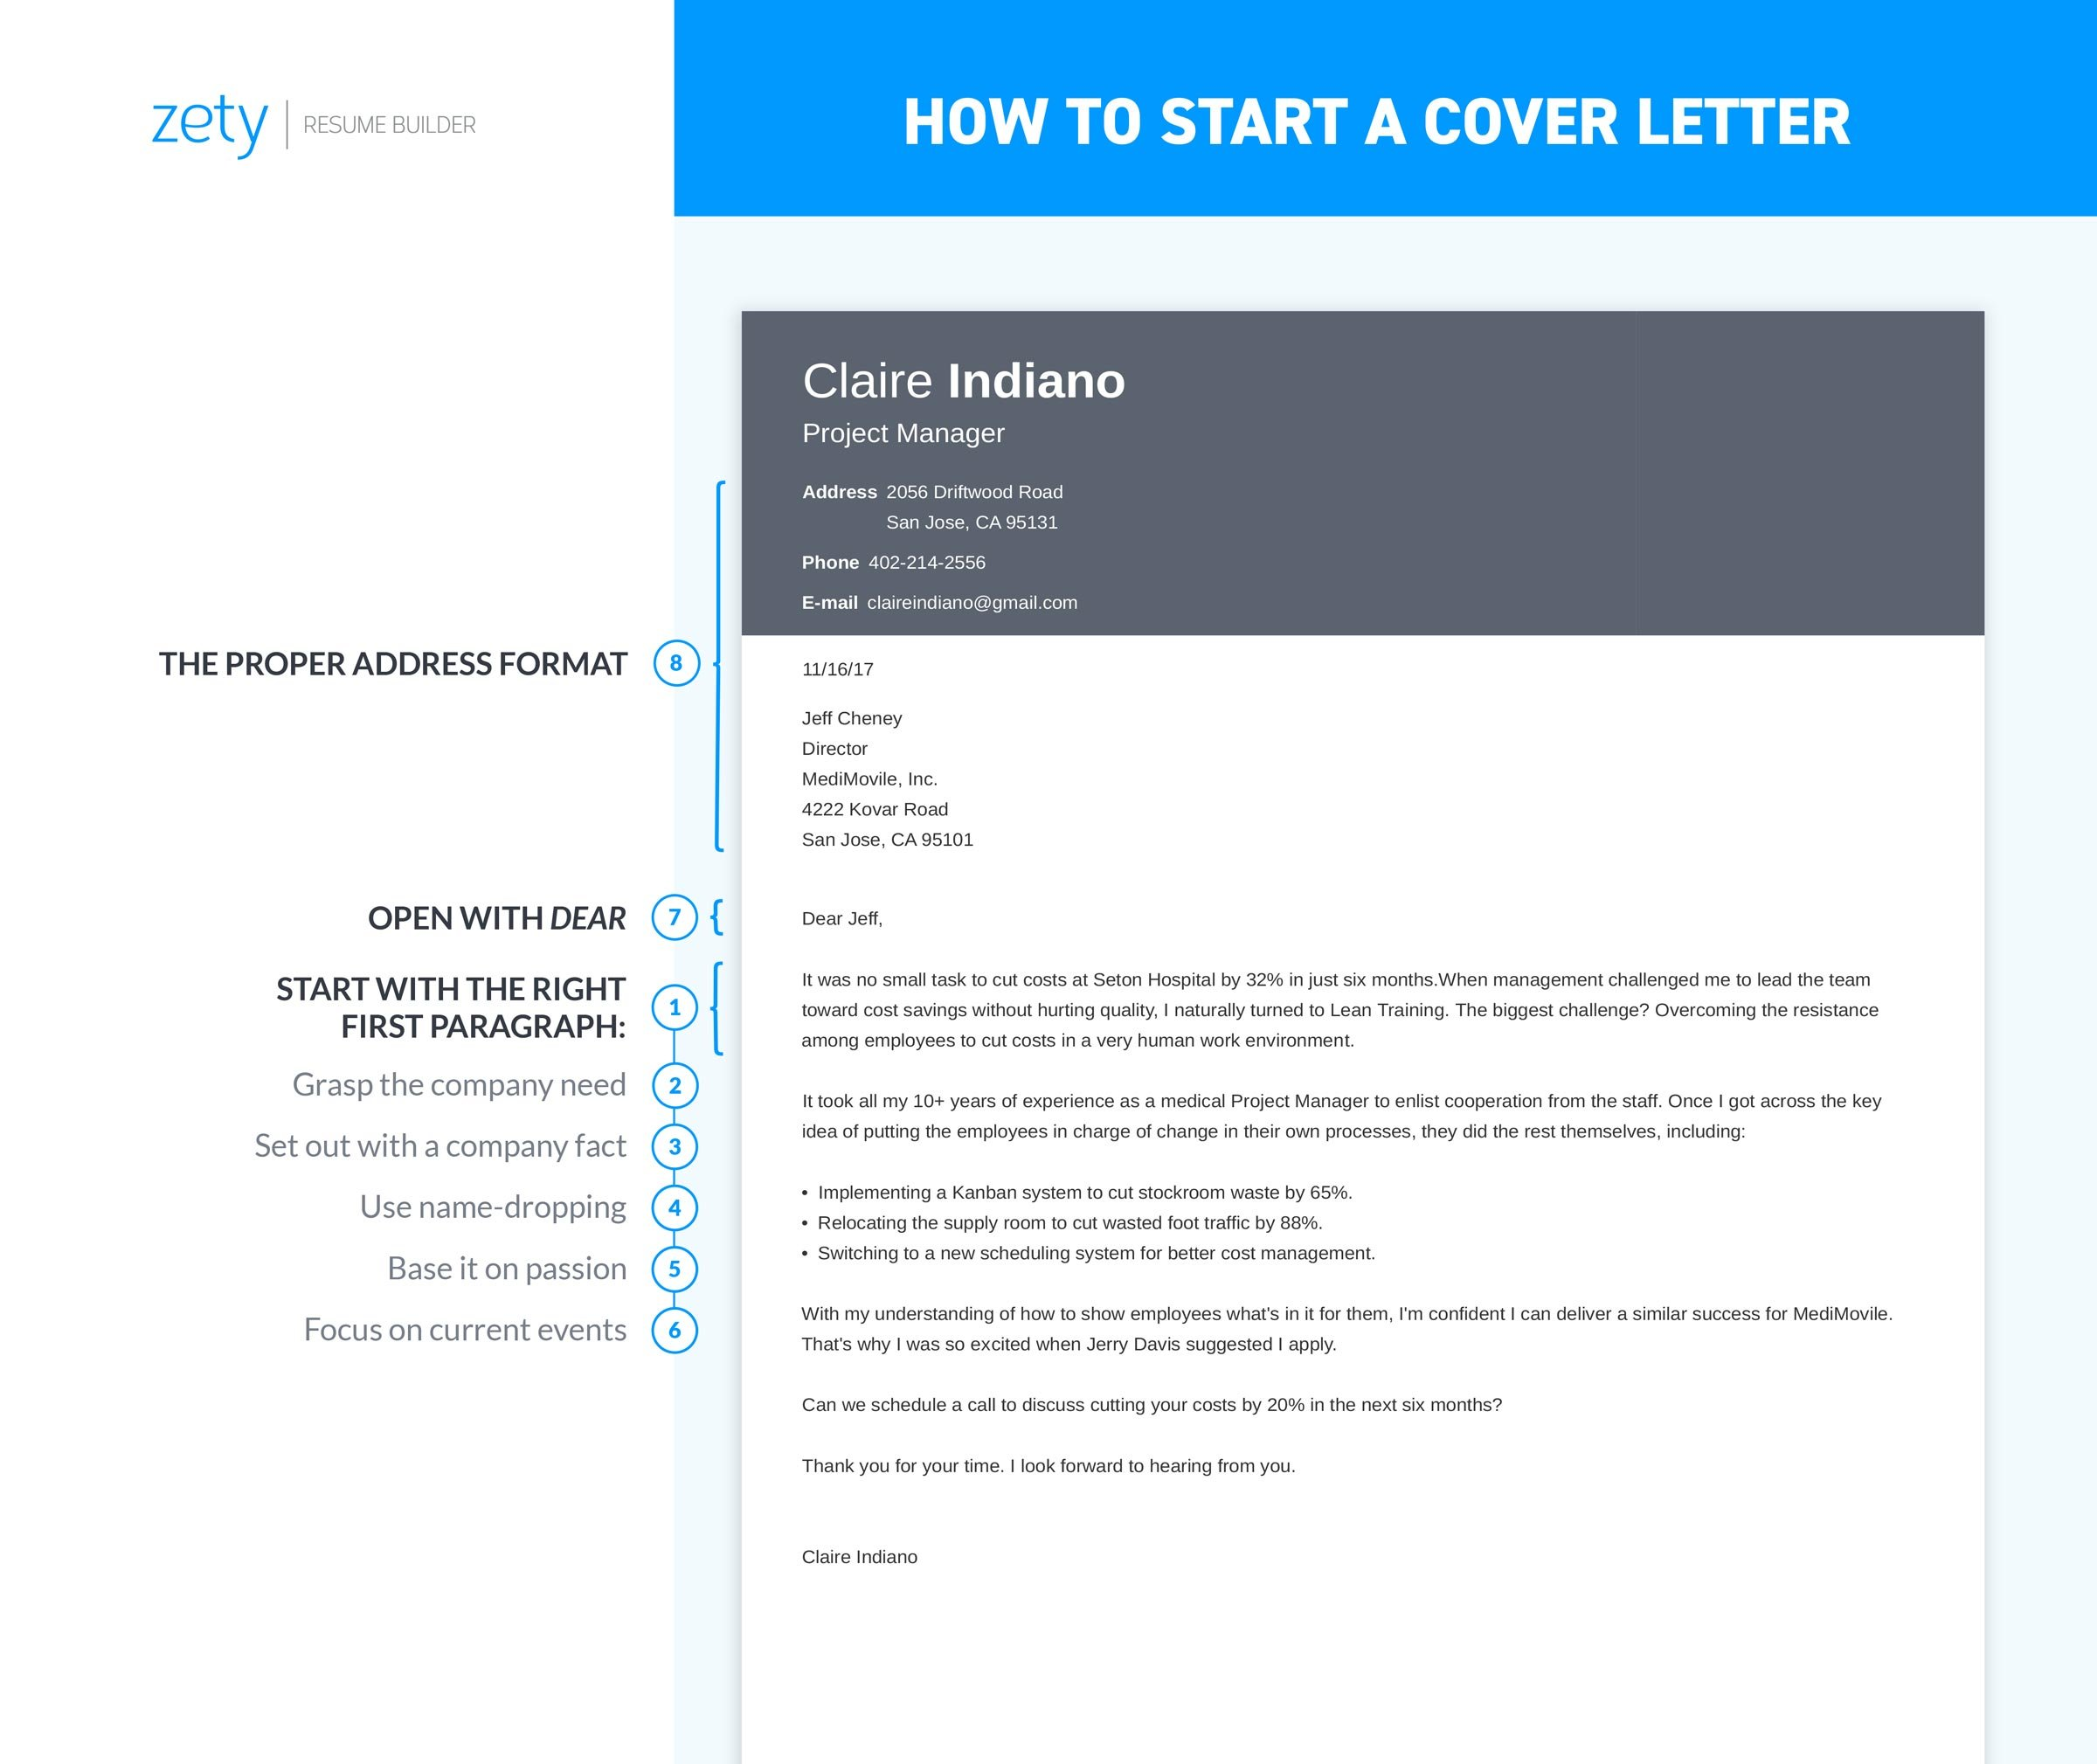 How to start a cover letter sample complete guide 20 examples infographic on how to start a cover letter madrichimfo Image collections